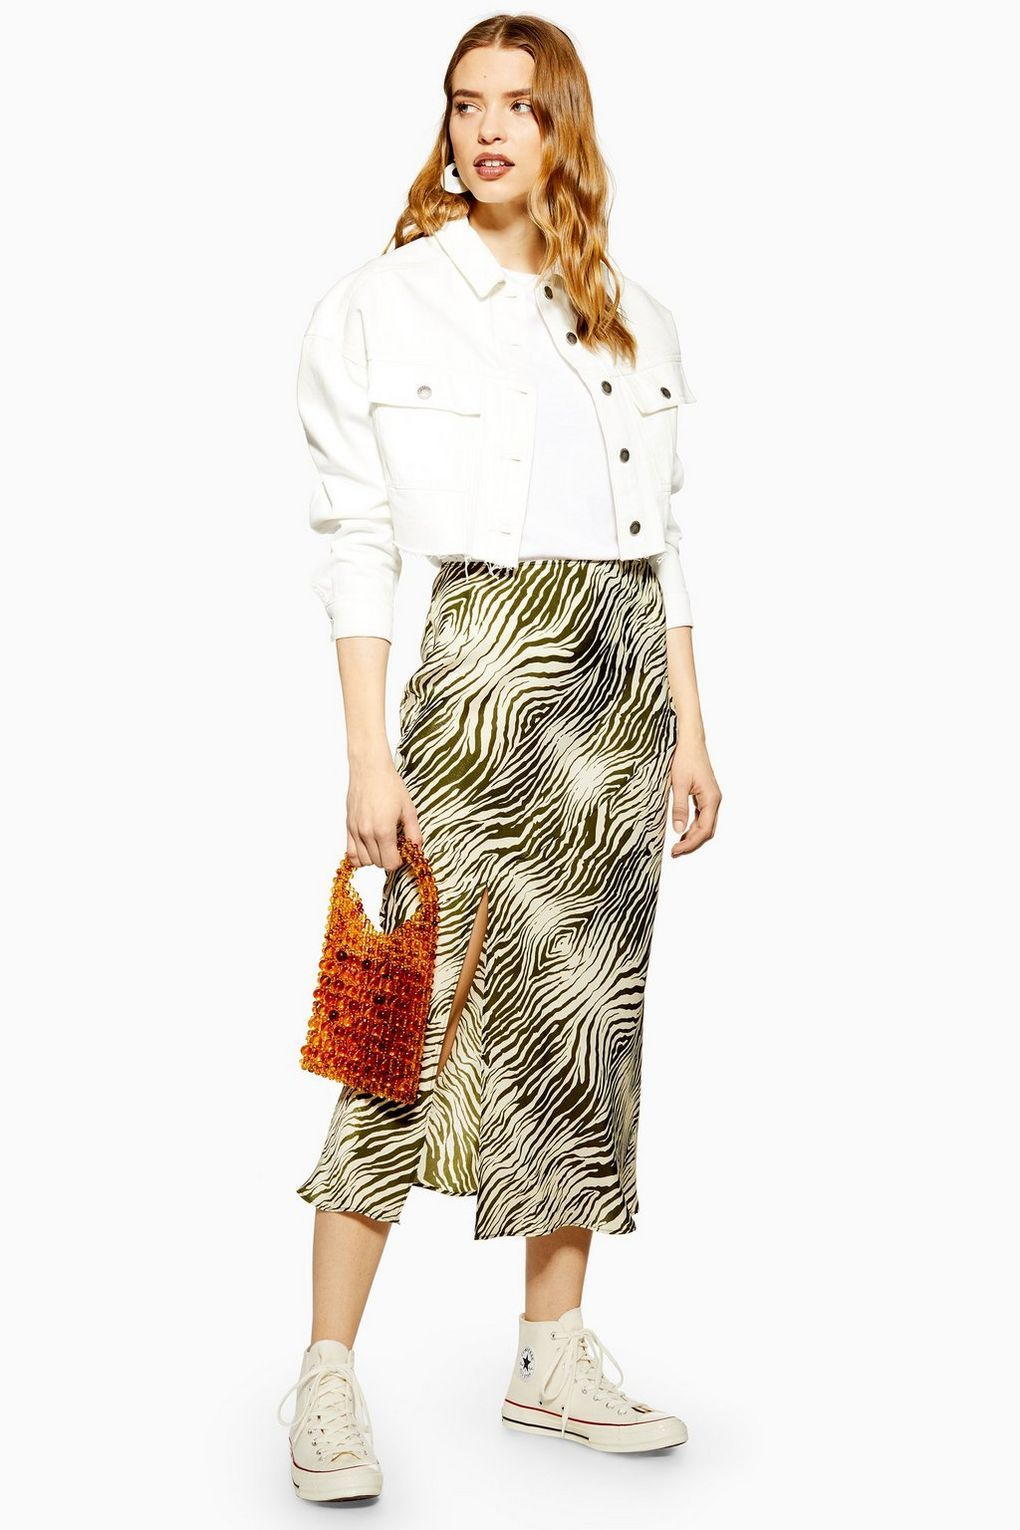 c44034a55 Topshop satin midi skirt: New drop of sell-out Topshop skirts